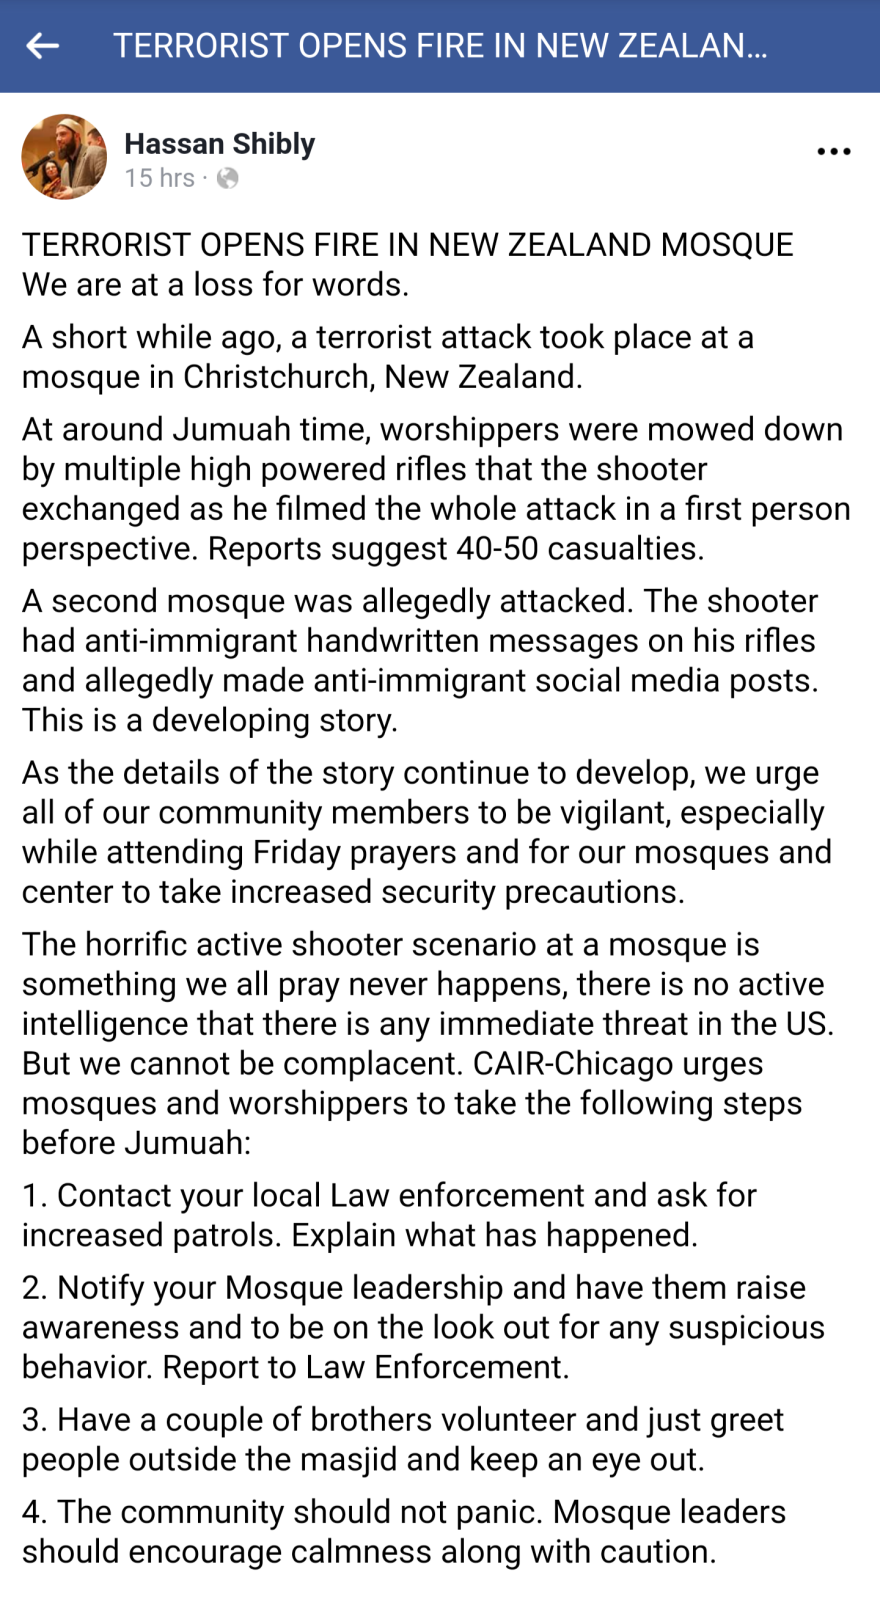 Hassan Shibly, of CAIR, responds on Facebook to the mass shooting in New Zealand.